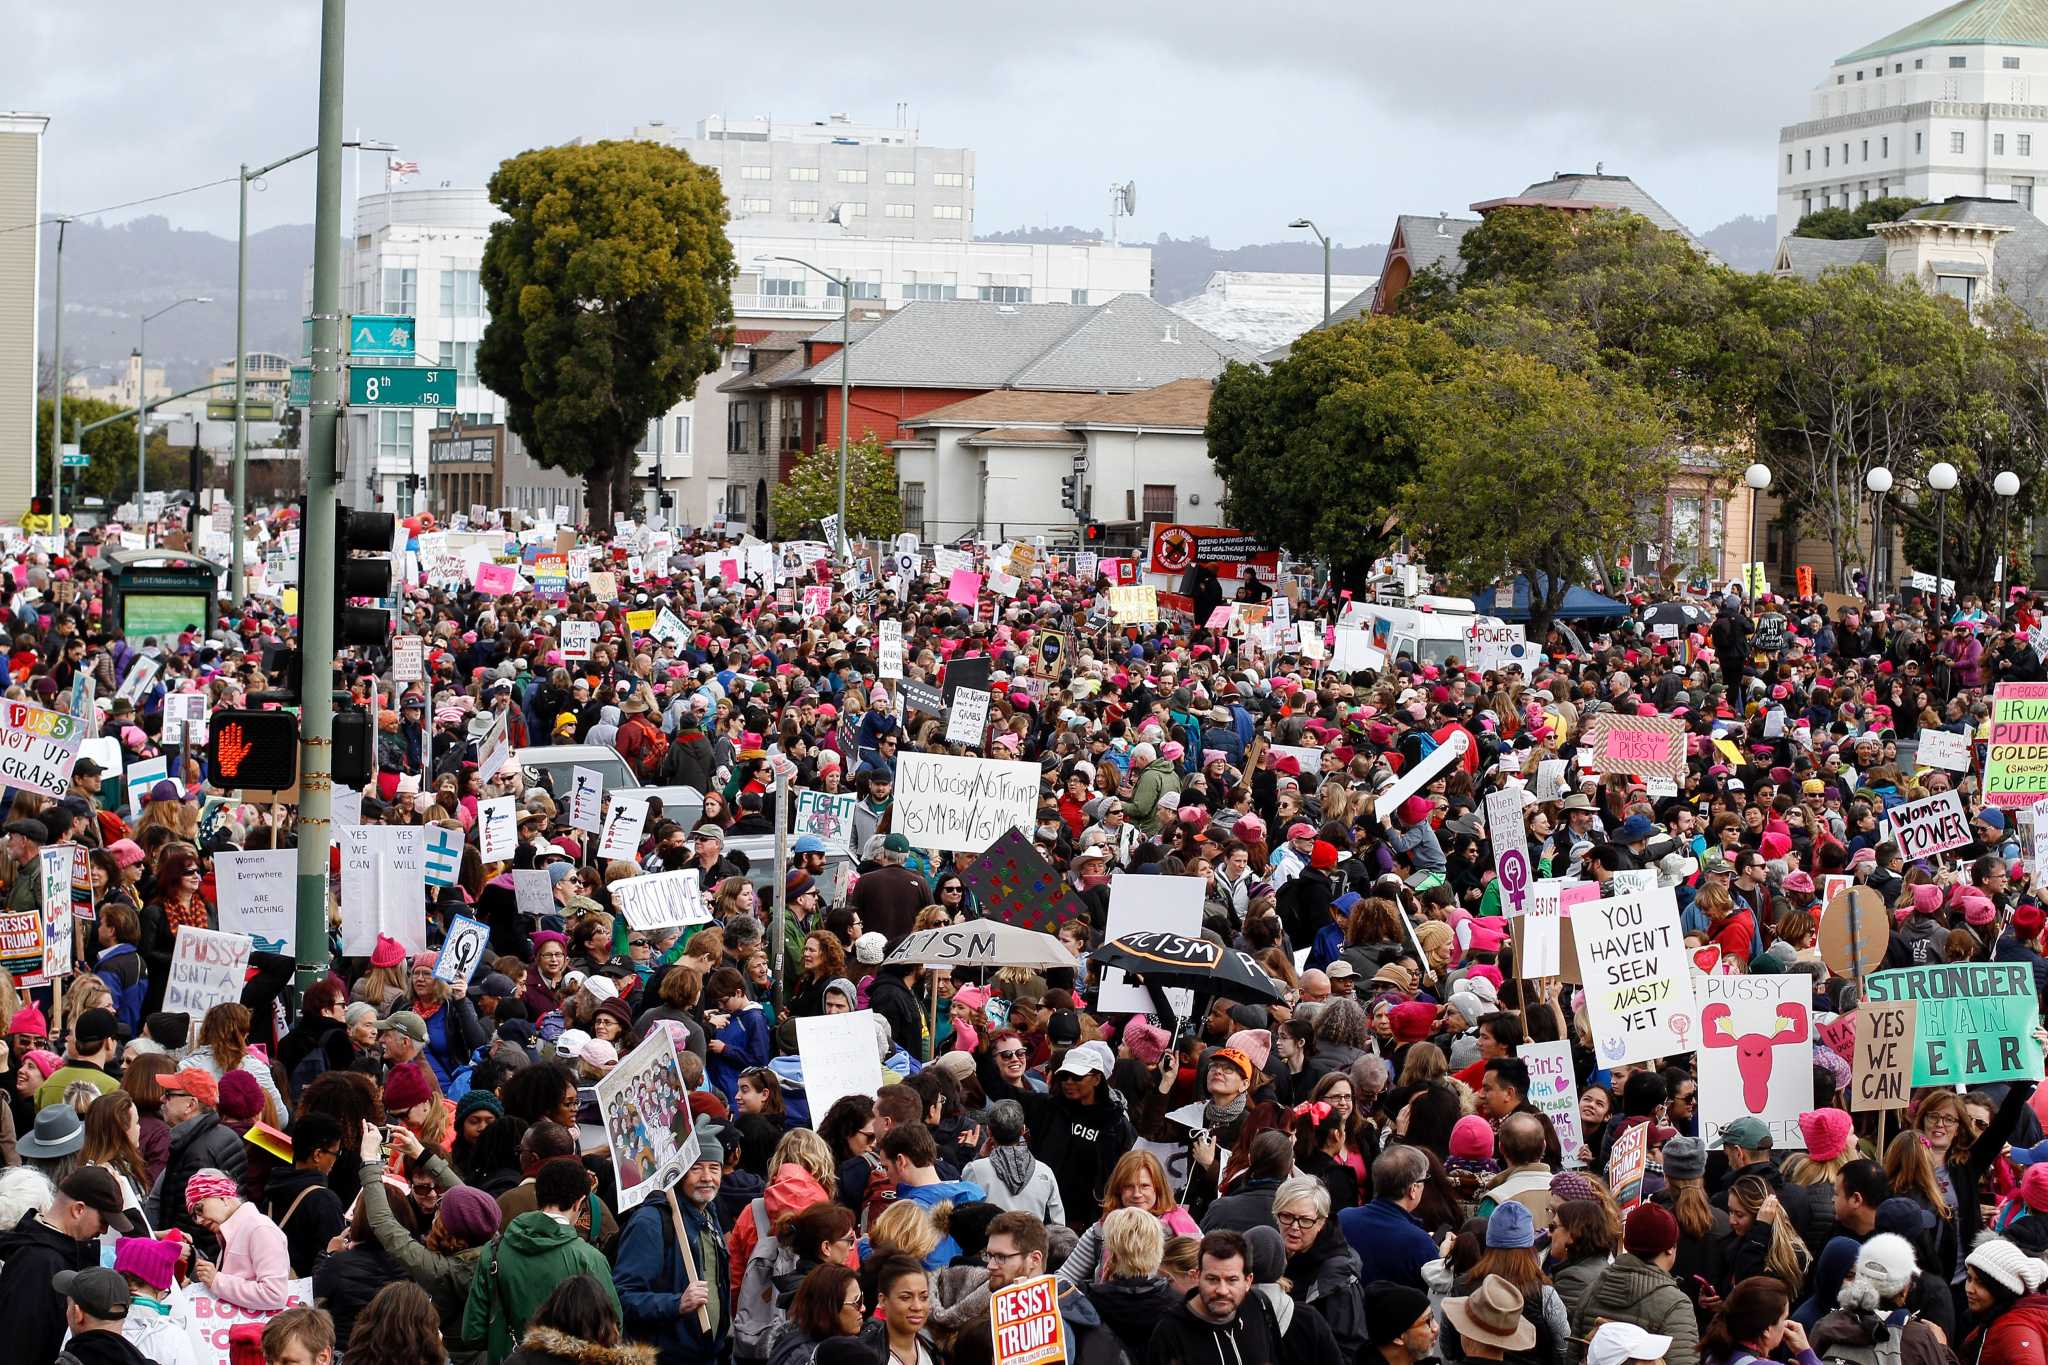 A portion of the marchers gather at 8th and Madison during Oakland Women's